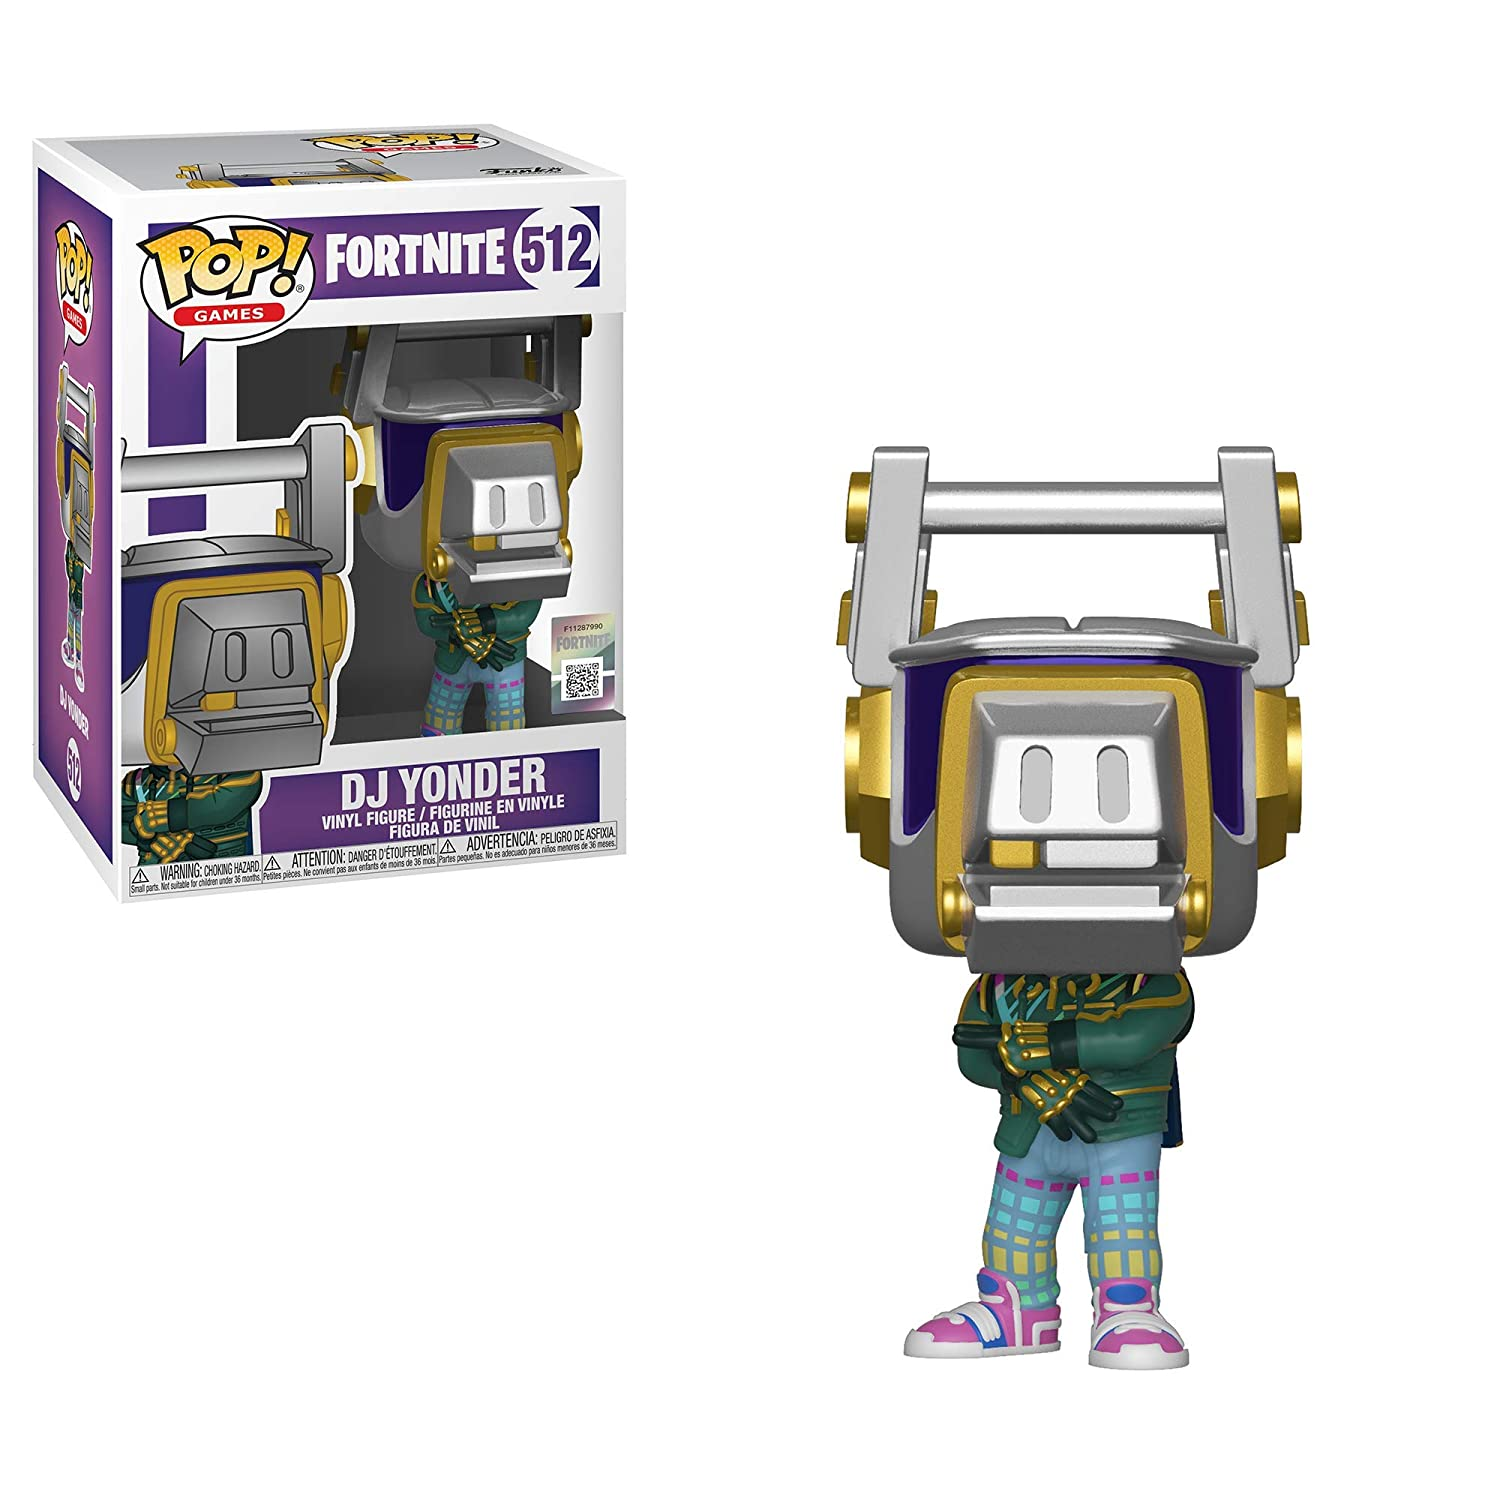 Funko- Pop Vinilo: Games: Fortnite: DJ Yonder Figura Coleccionable, Multicolor (39050)